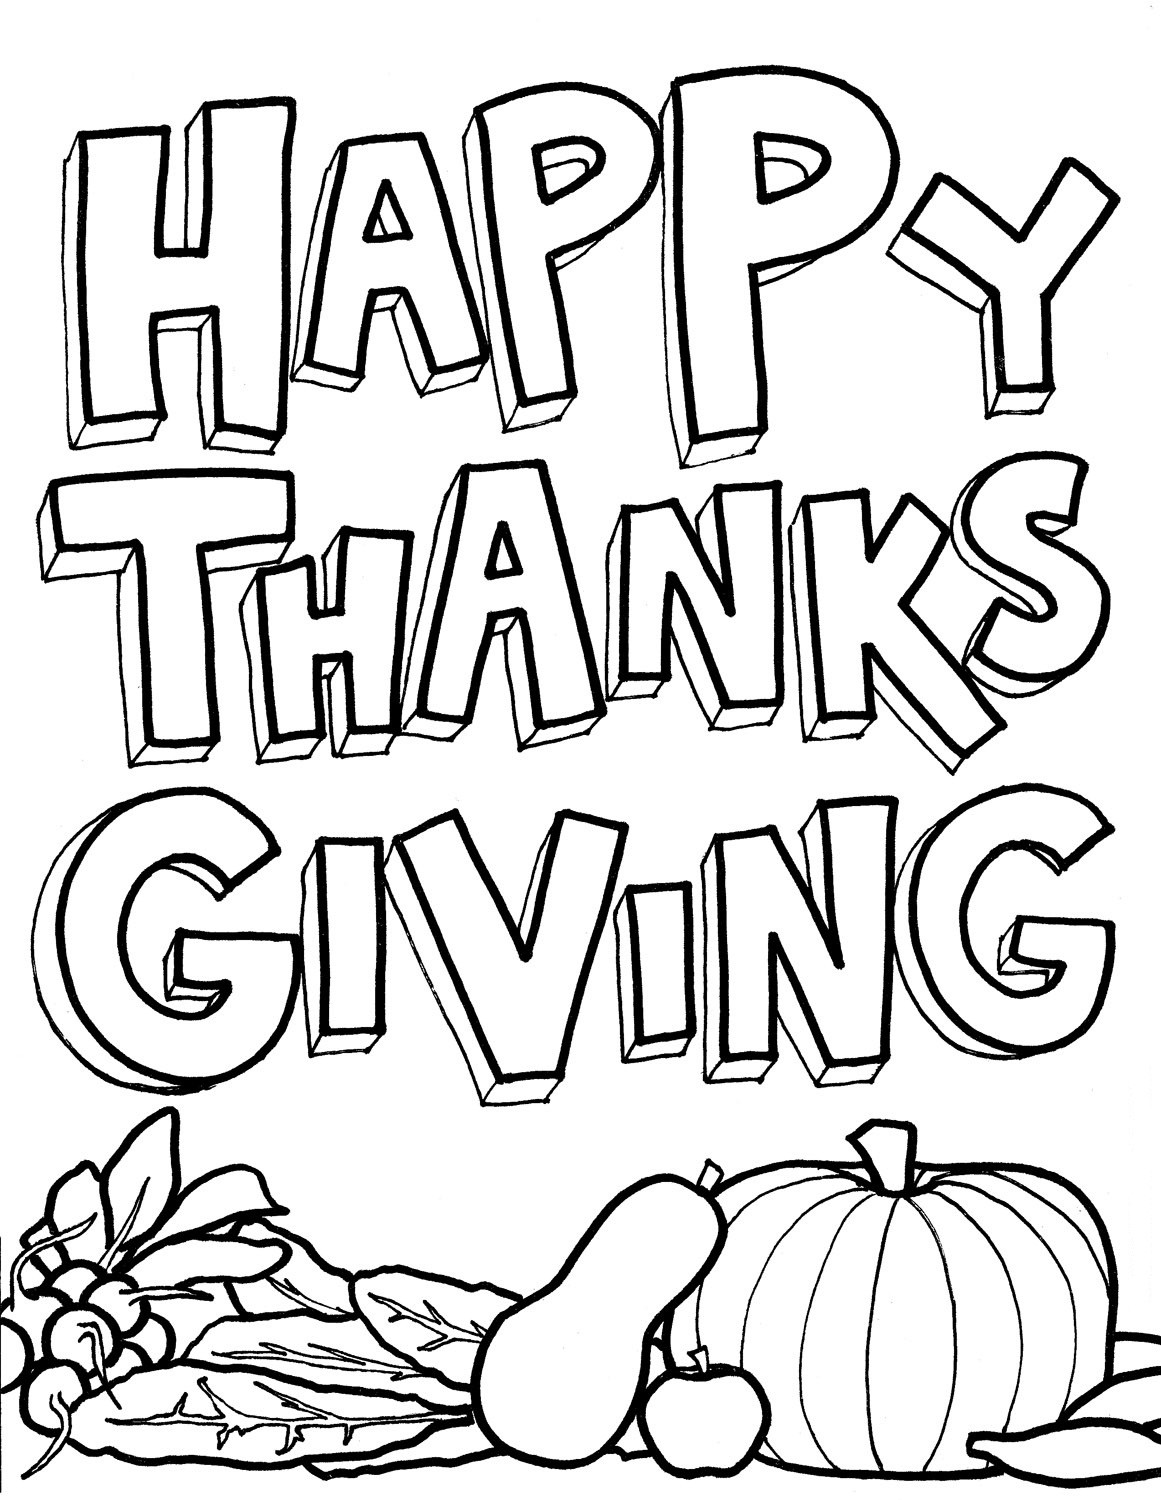 Thanksgiving Coloring Pages For Children  Thanksgiving Day Coloring Pages for childrens printable